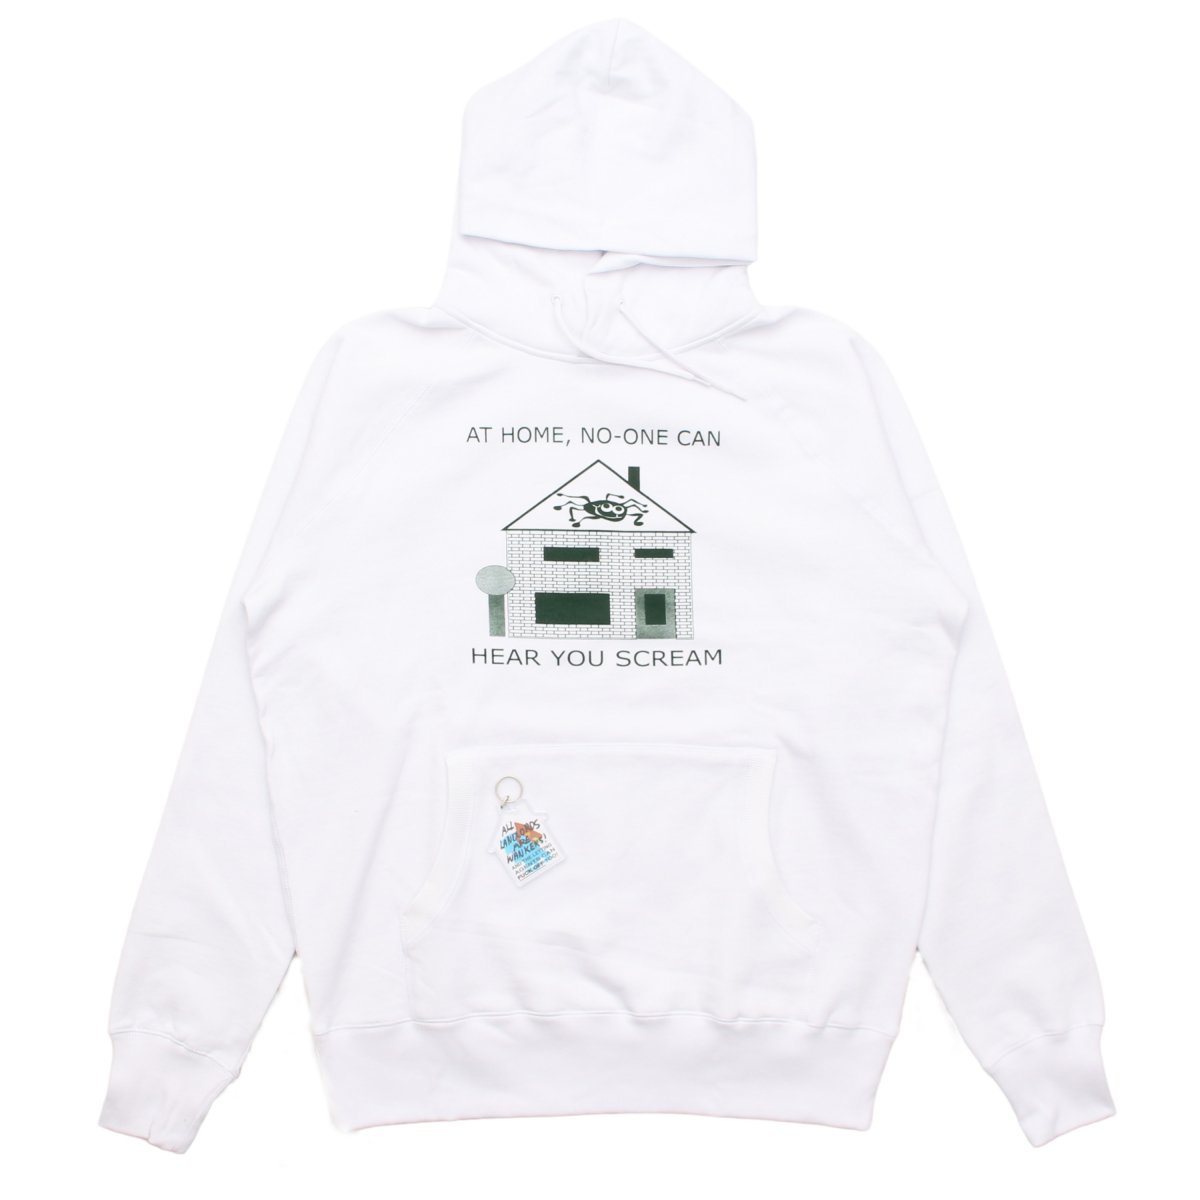 AT HOME HOODY by Leomi Sadler 【WHITE】